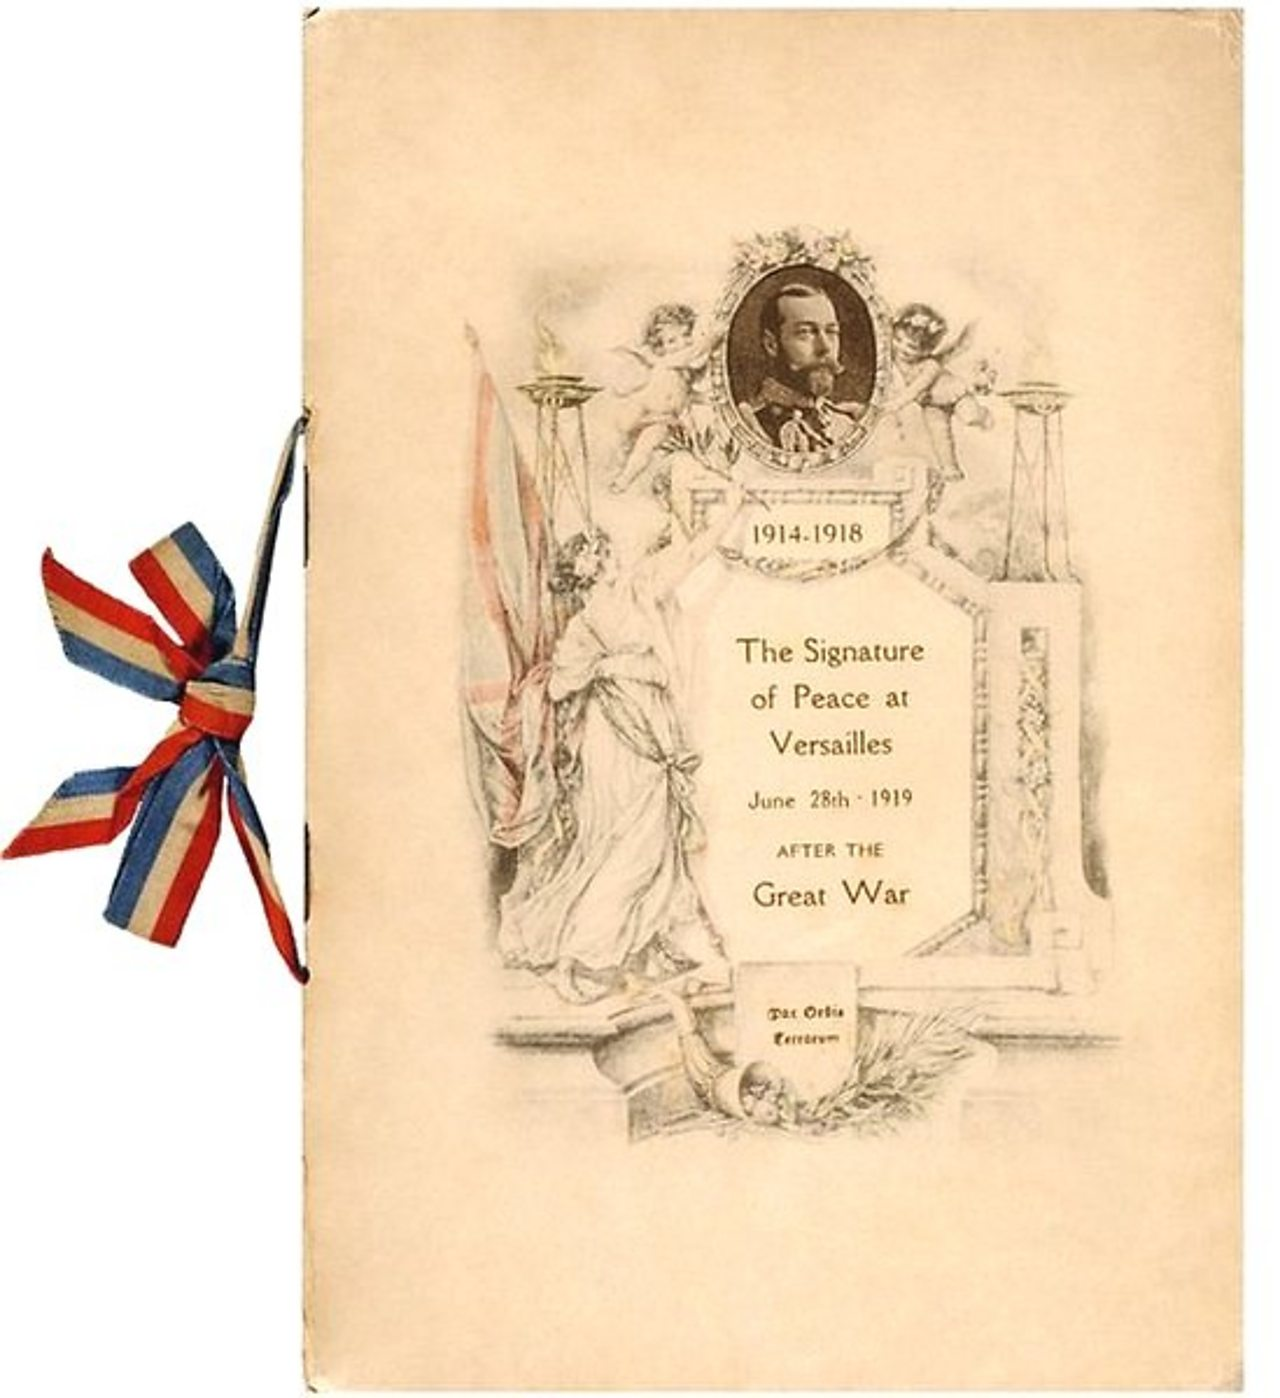 Original booklet from the signing of the Treaty of Versailles